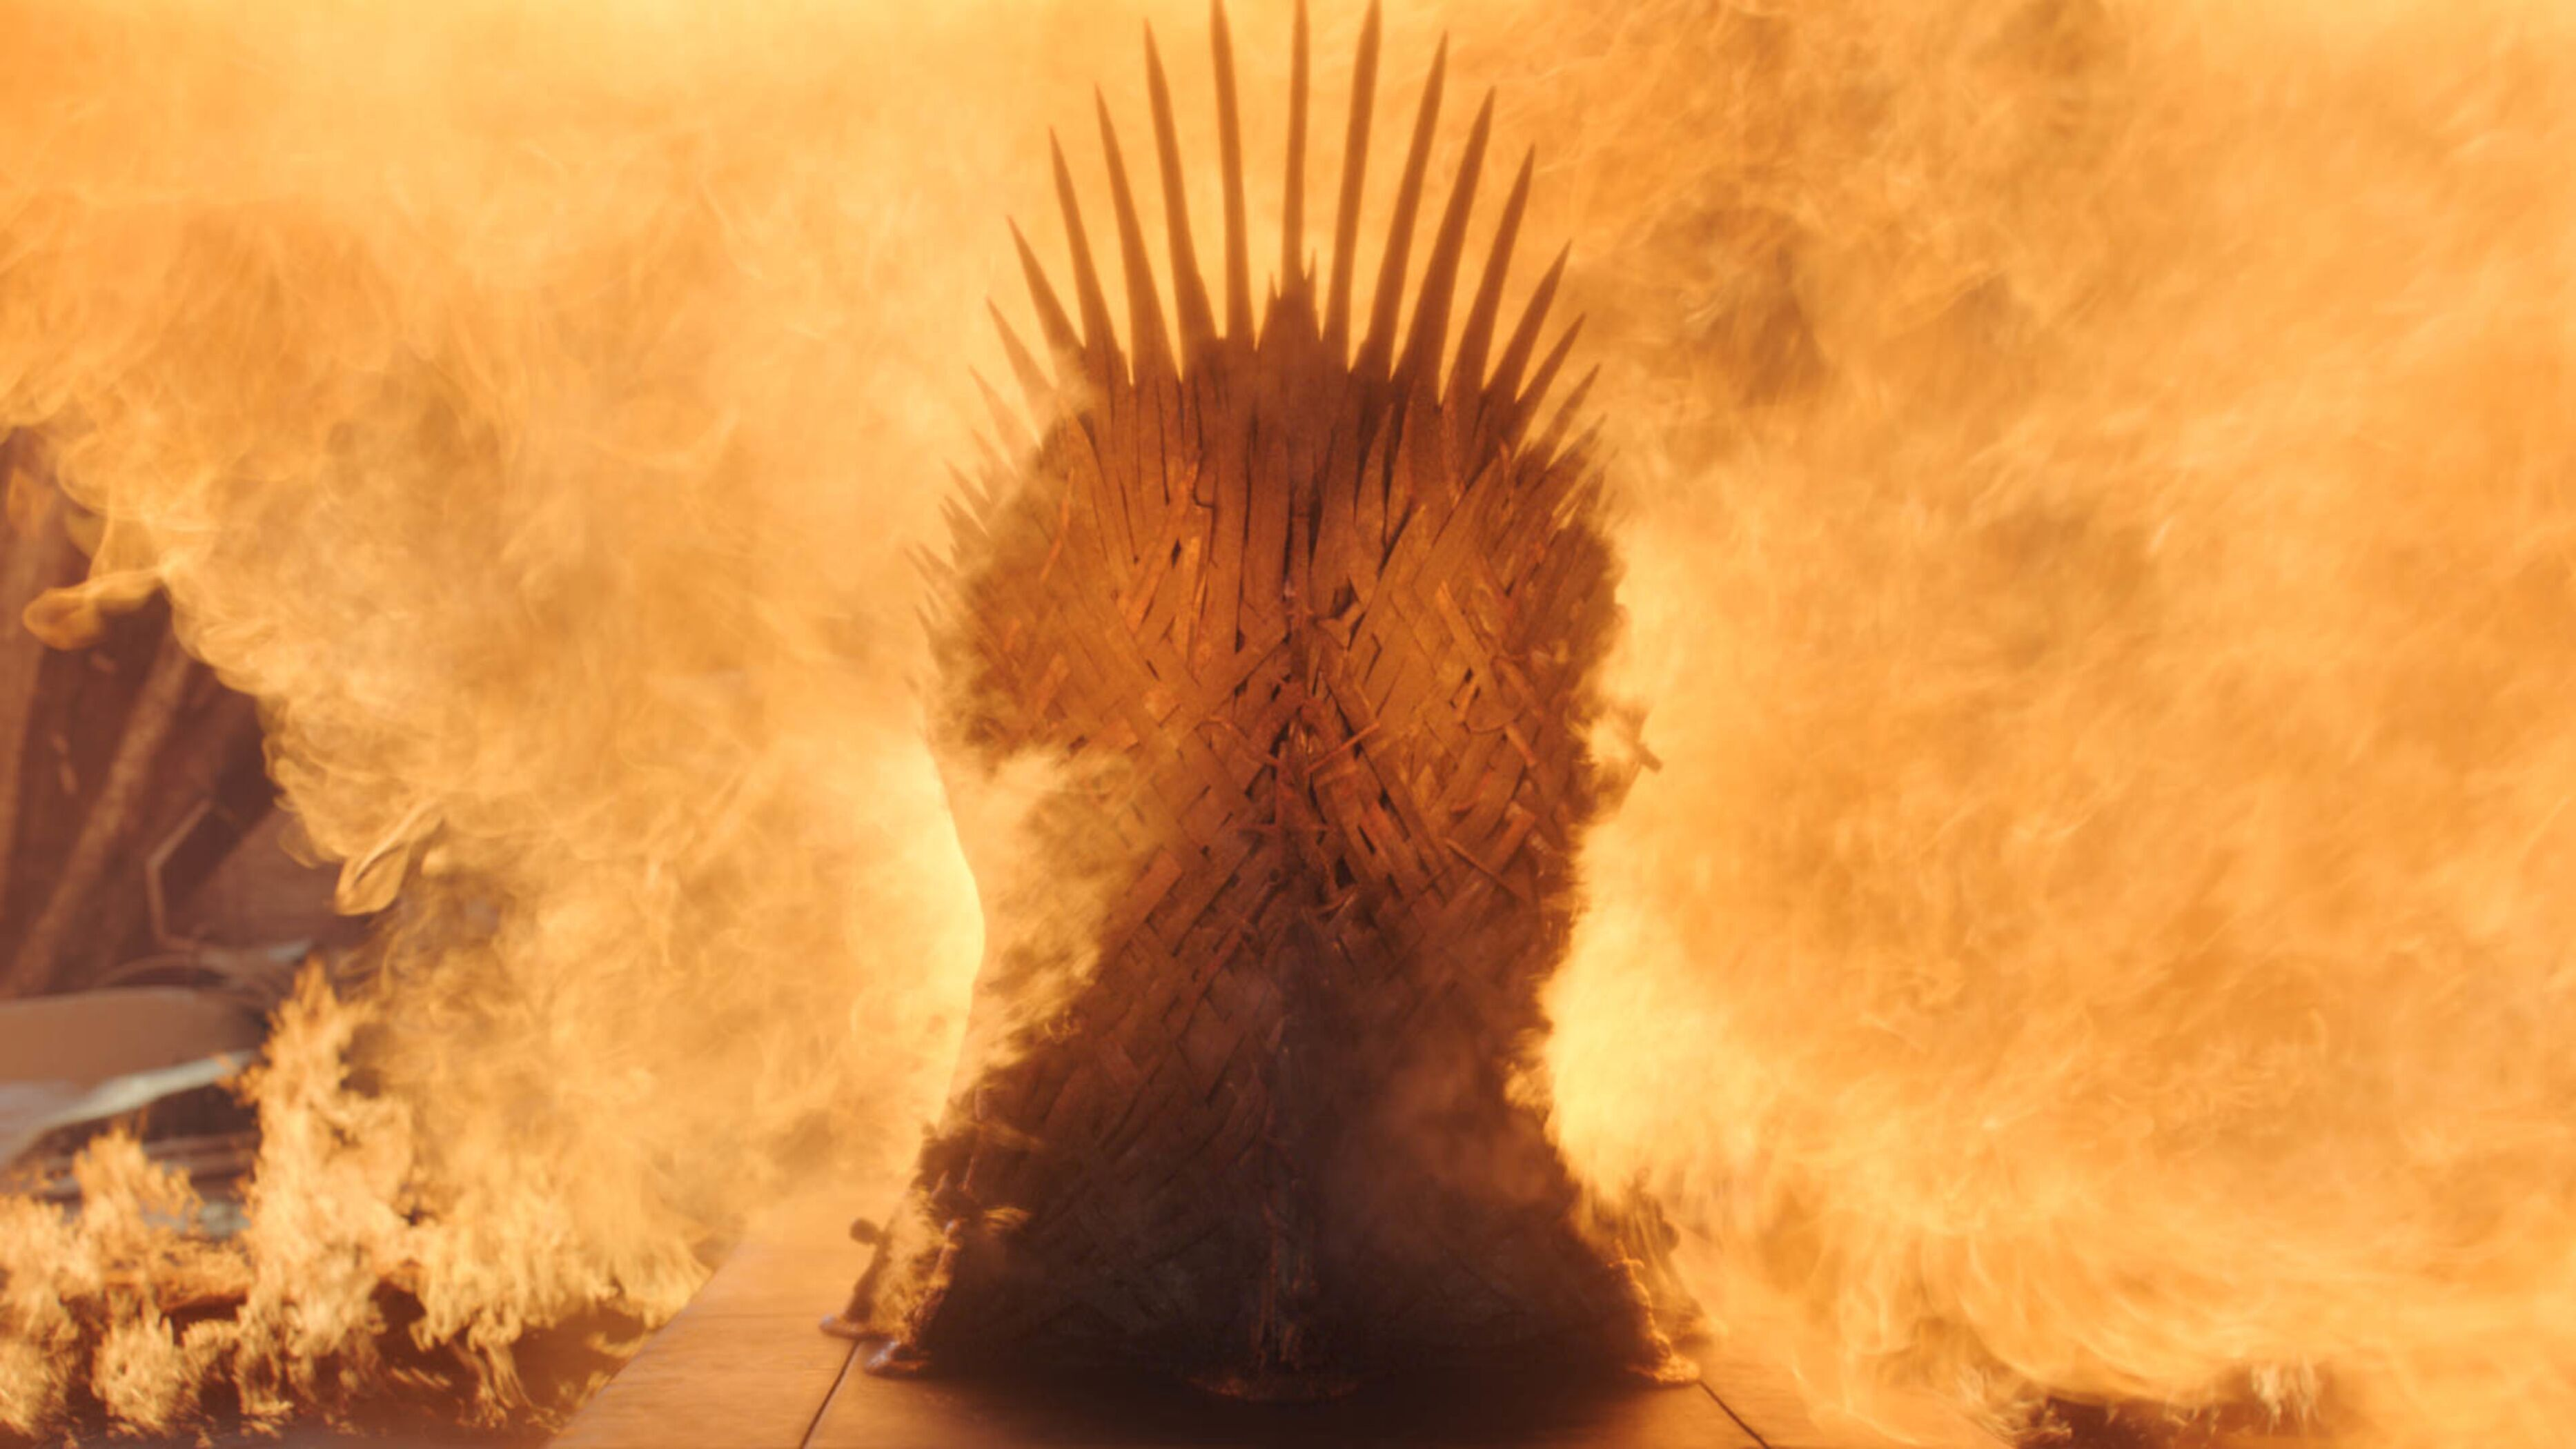 Burning Serie Game Of Thrones